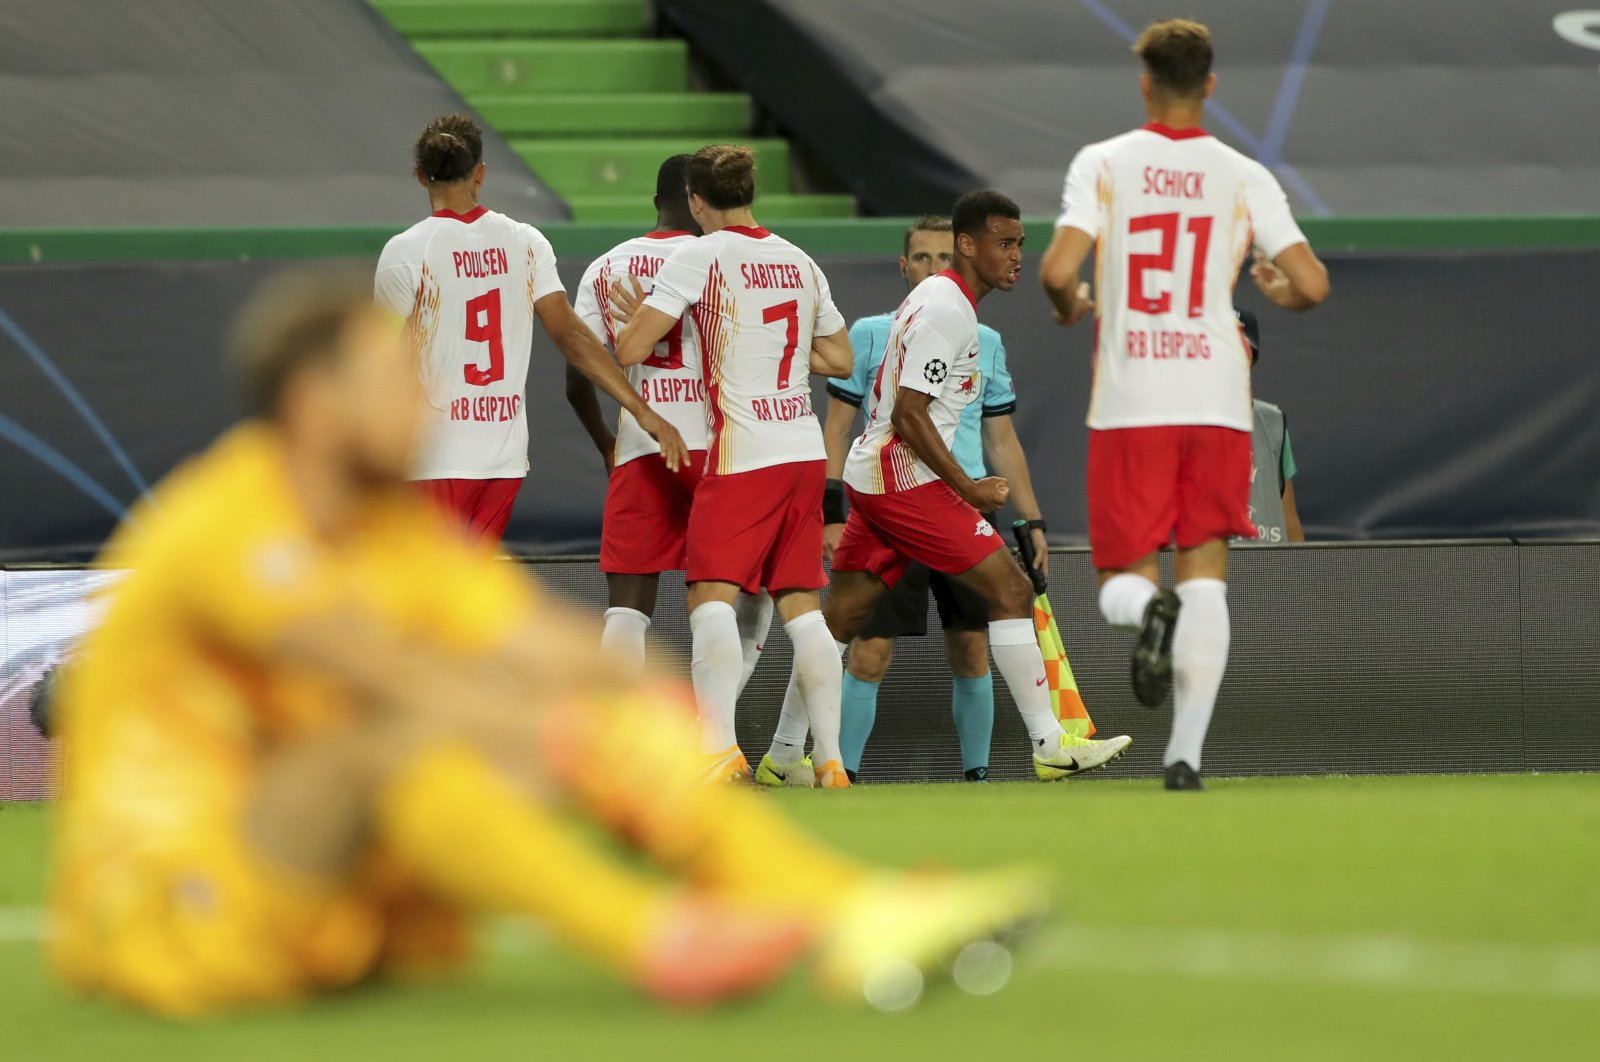 Leipzig's Tyler Adams, right, celebrates after scoring his side's second goal during the Champions League quarterfinal match between RB Leipzig and Atletico Madrid at the Jose Alvalade stadium in Lisbon, Portugal, Thursday, Aug. 13, 2020. (AP Photo)